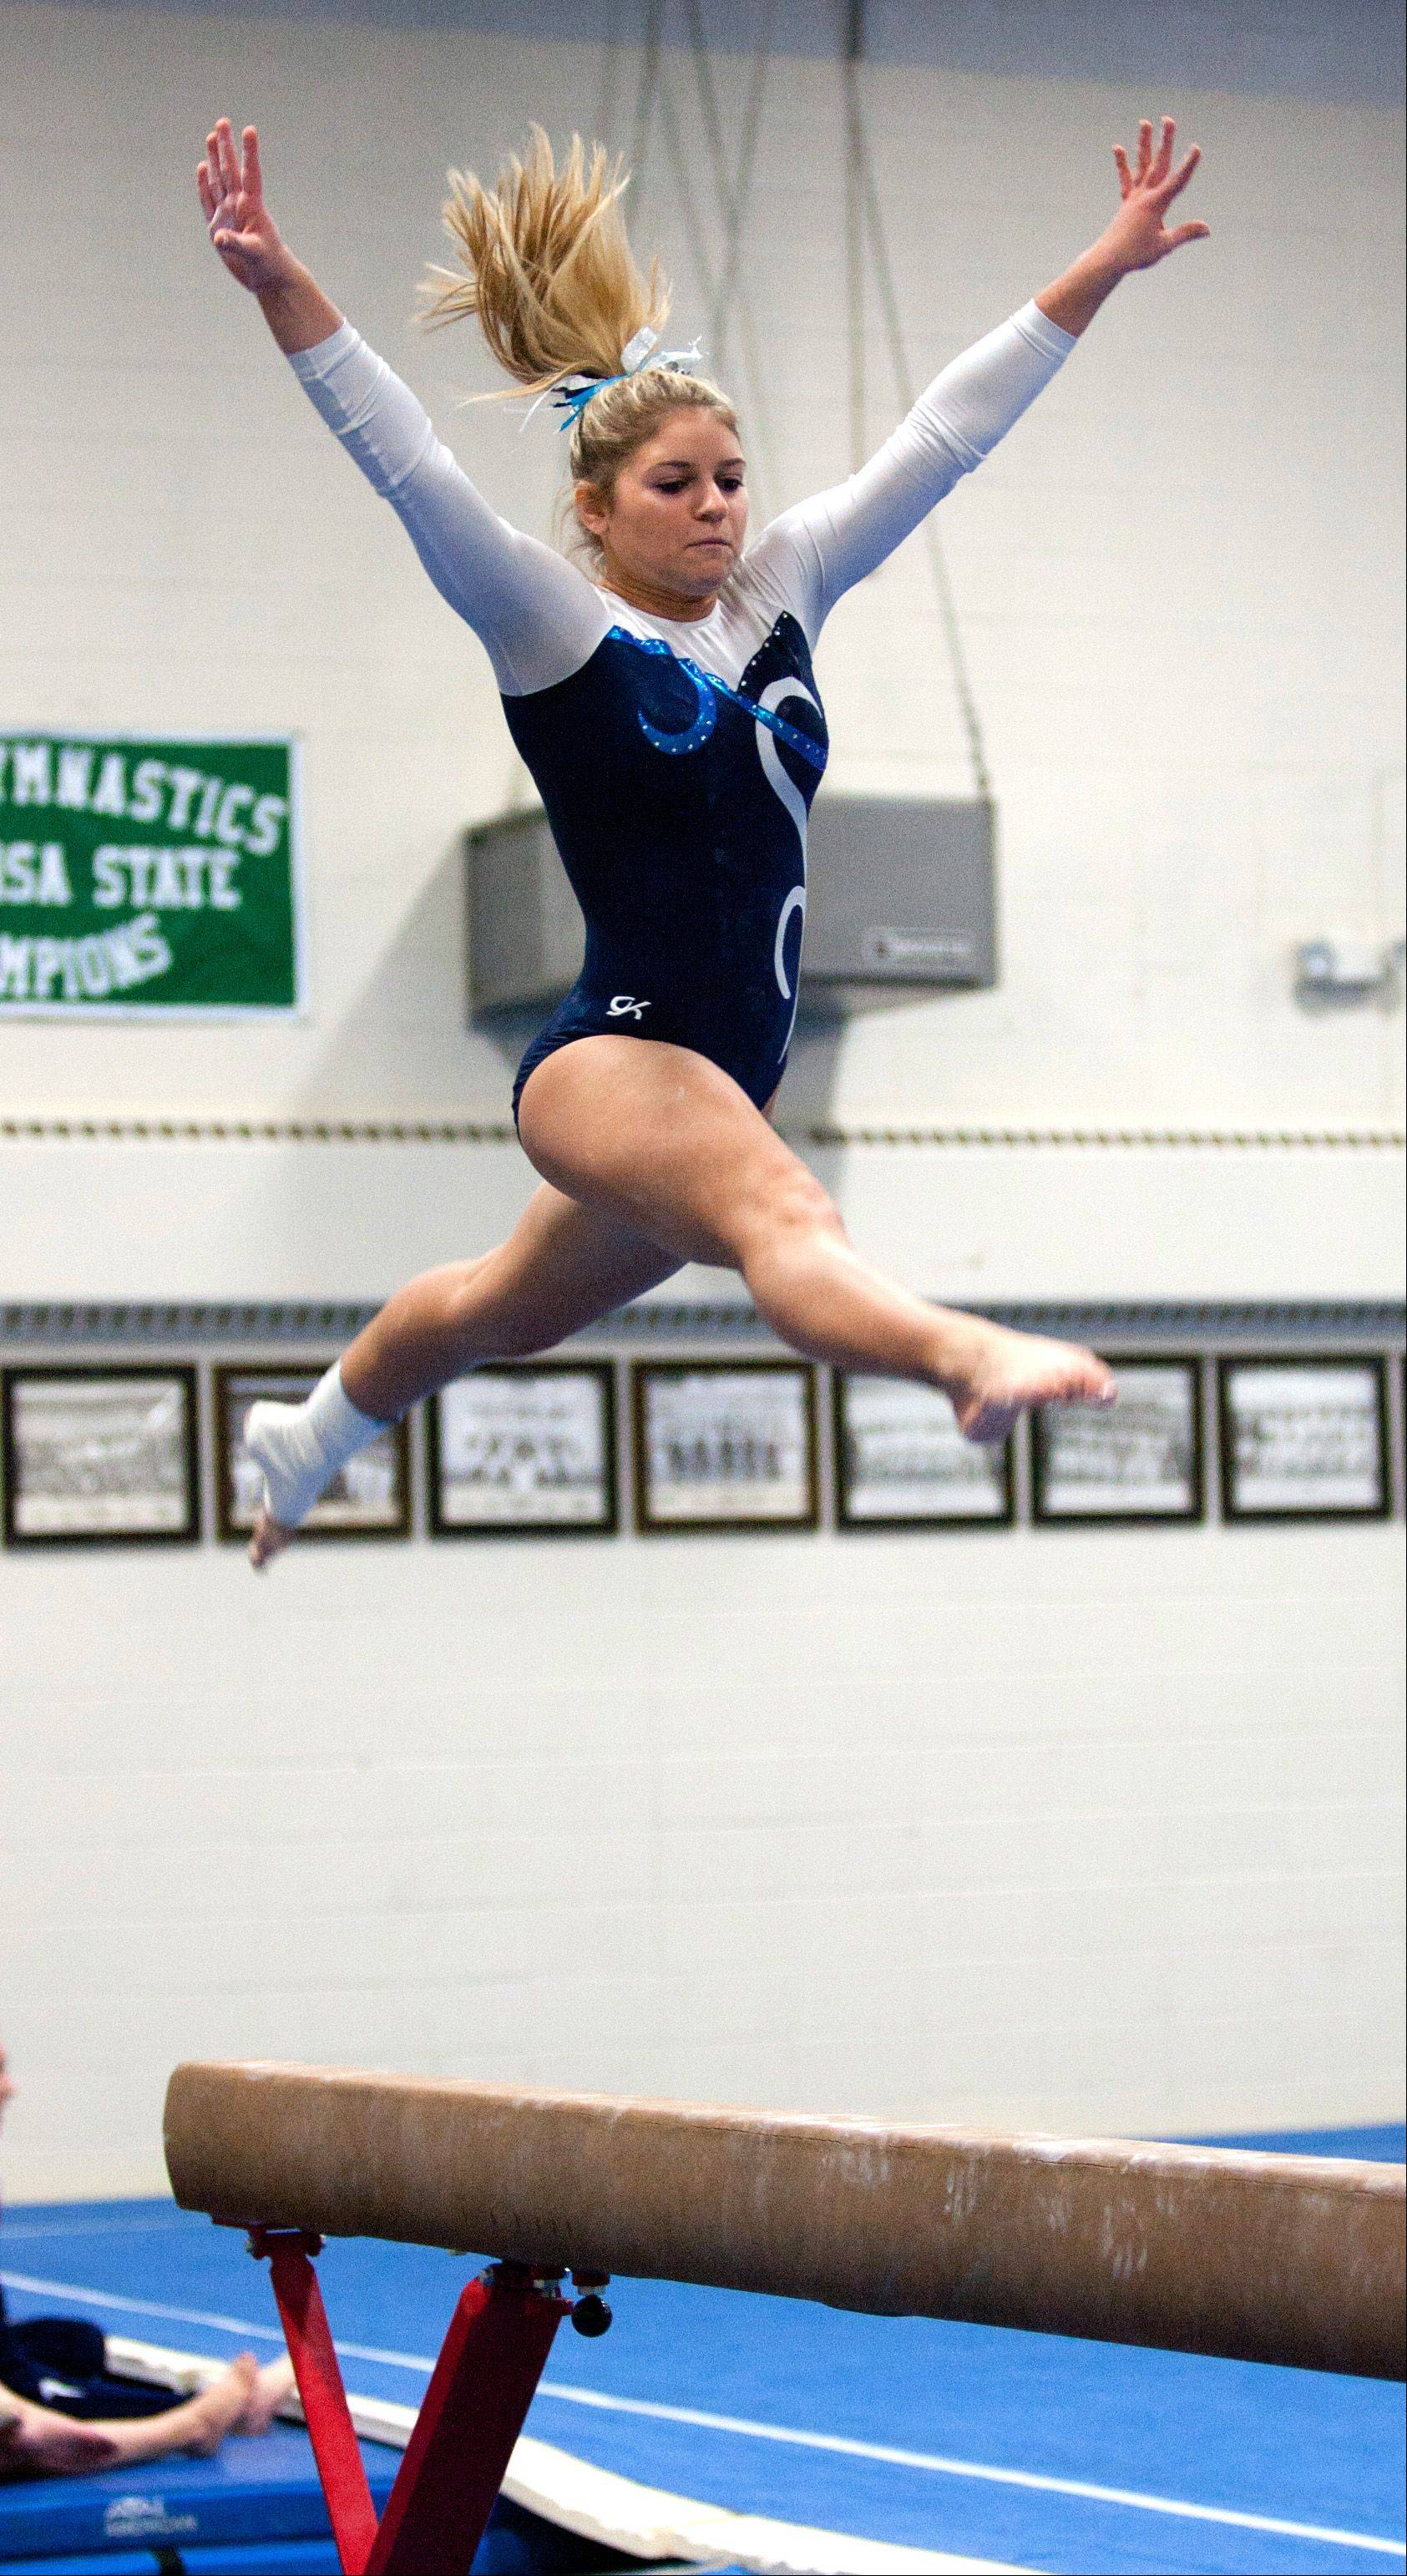 Lake Park High School's Annalise Donati performs her balance beam routine, during the York Girls' Gymnastics Invite.